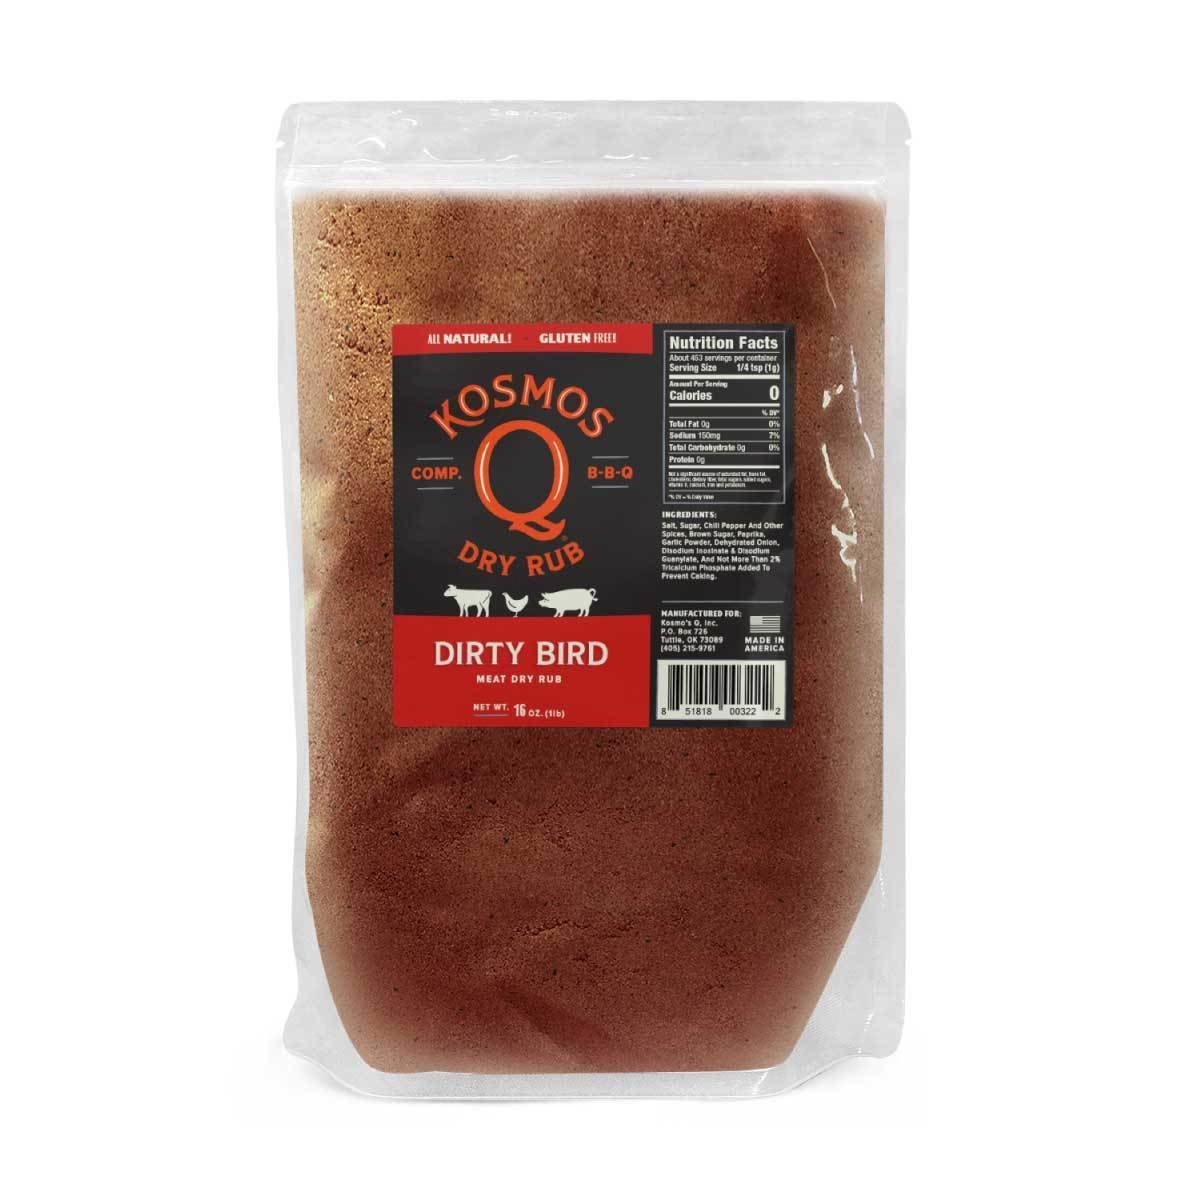 Kosmos Dirty Bird 1lb Bag